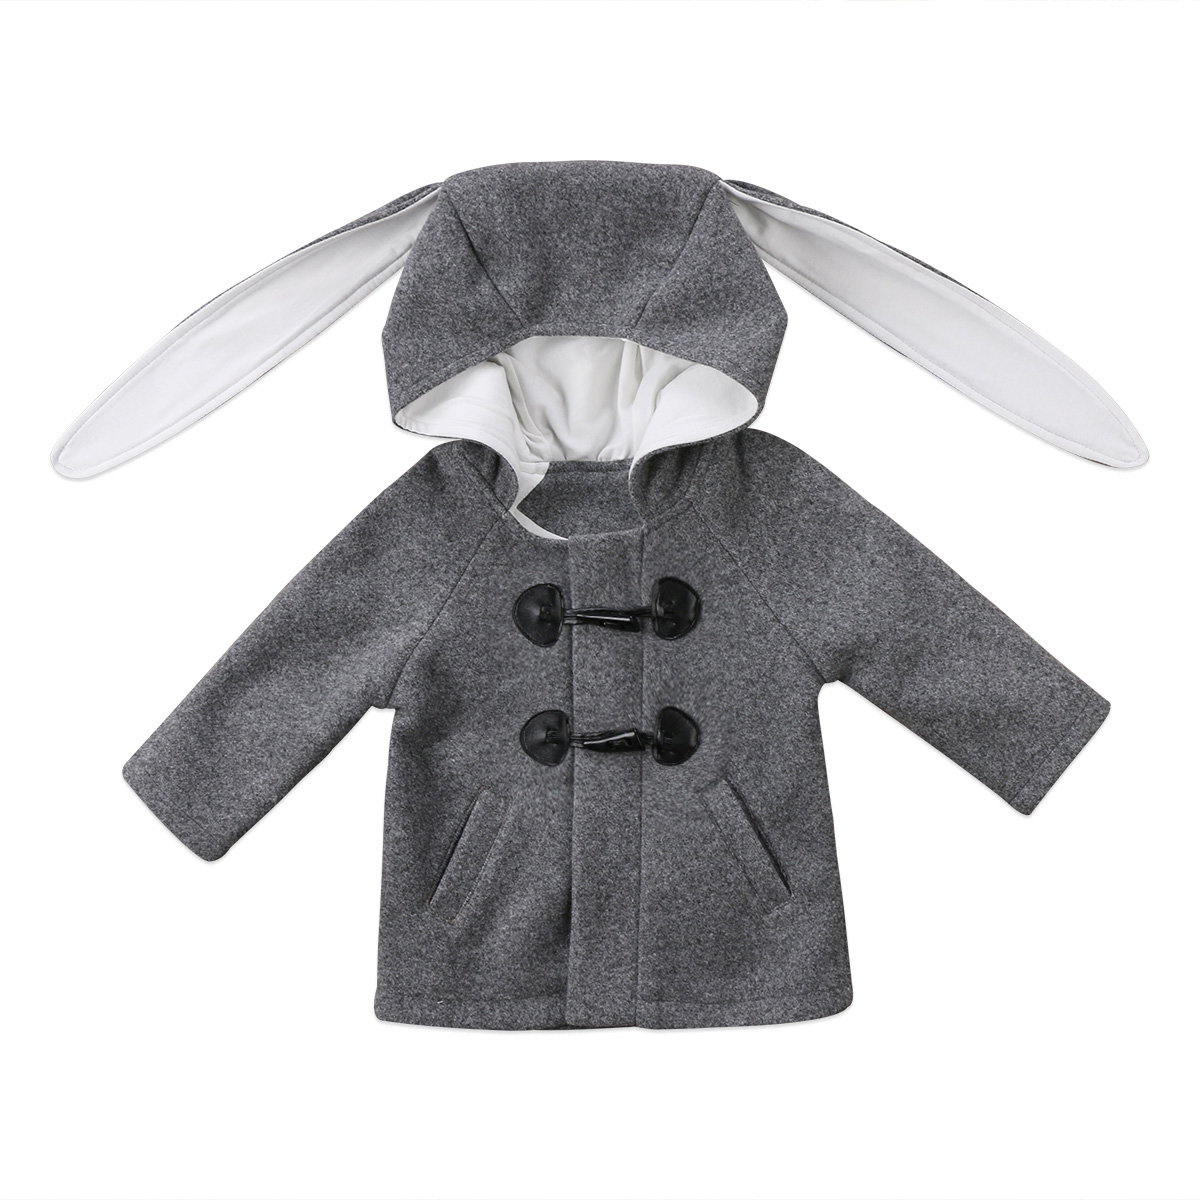 Winter Baby Coat NEW Kids Baby Girls Winter Warm Button Long Sleeve Hooded Coat Outerwear Jacket